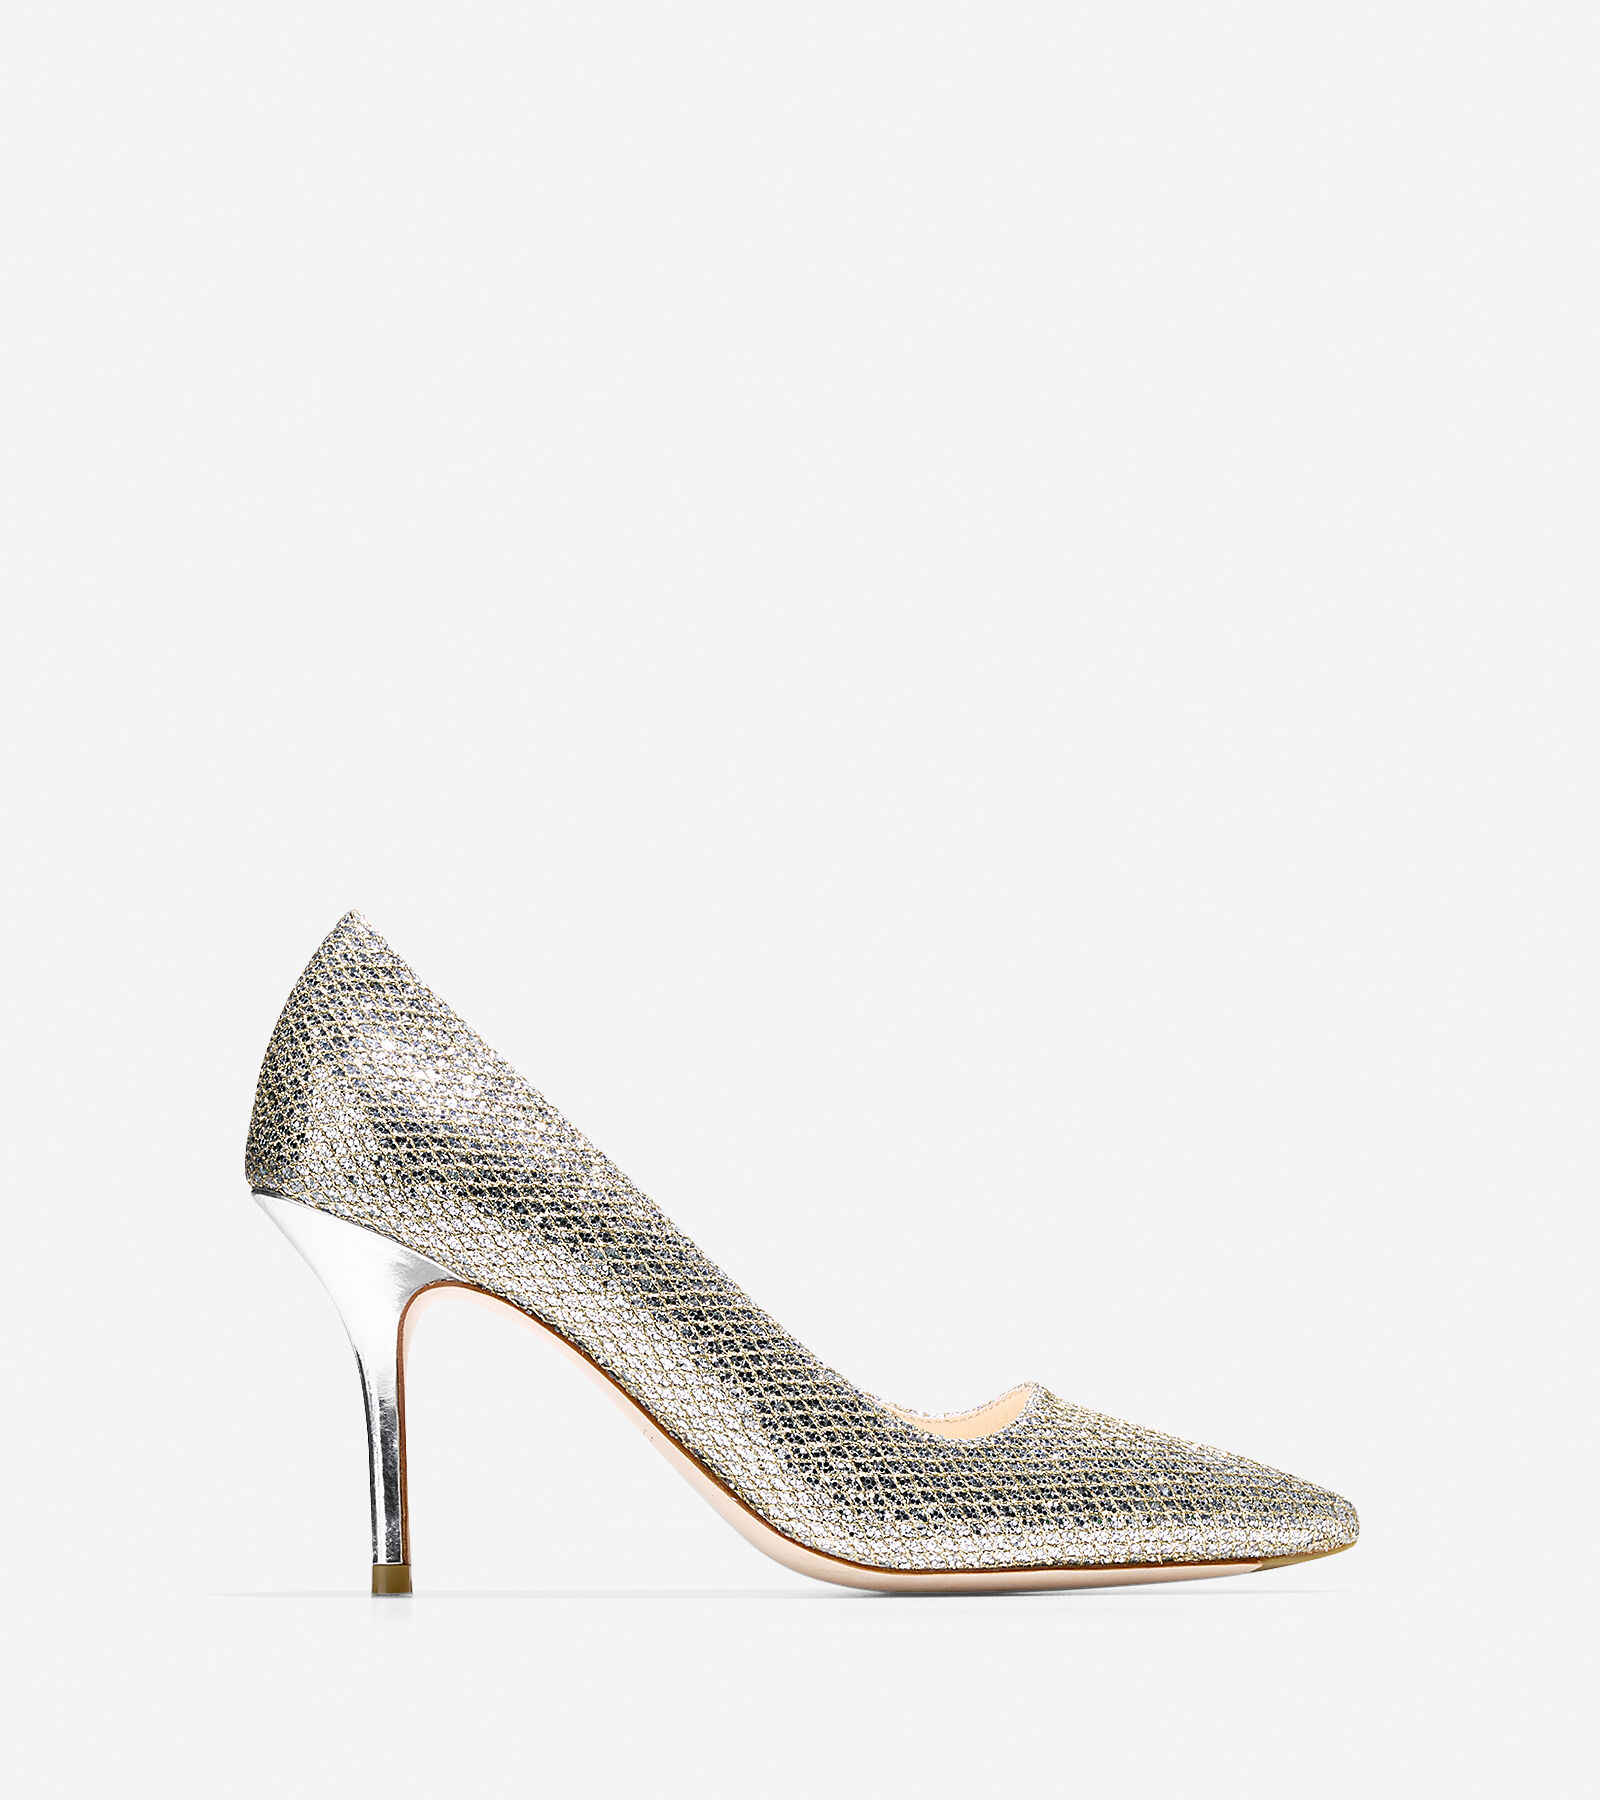 Womens Shoes Cole Haan Bradshaw Pump 85 Gold/Silver Glitter